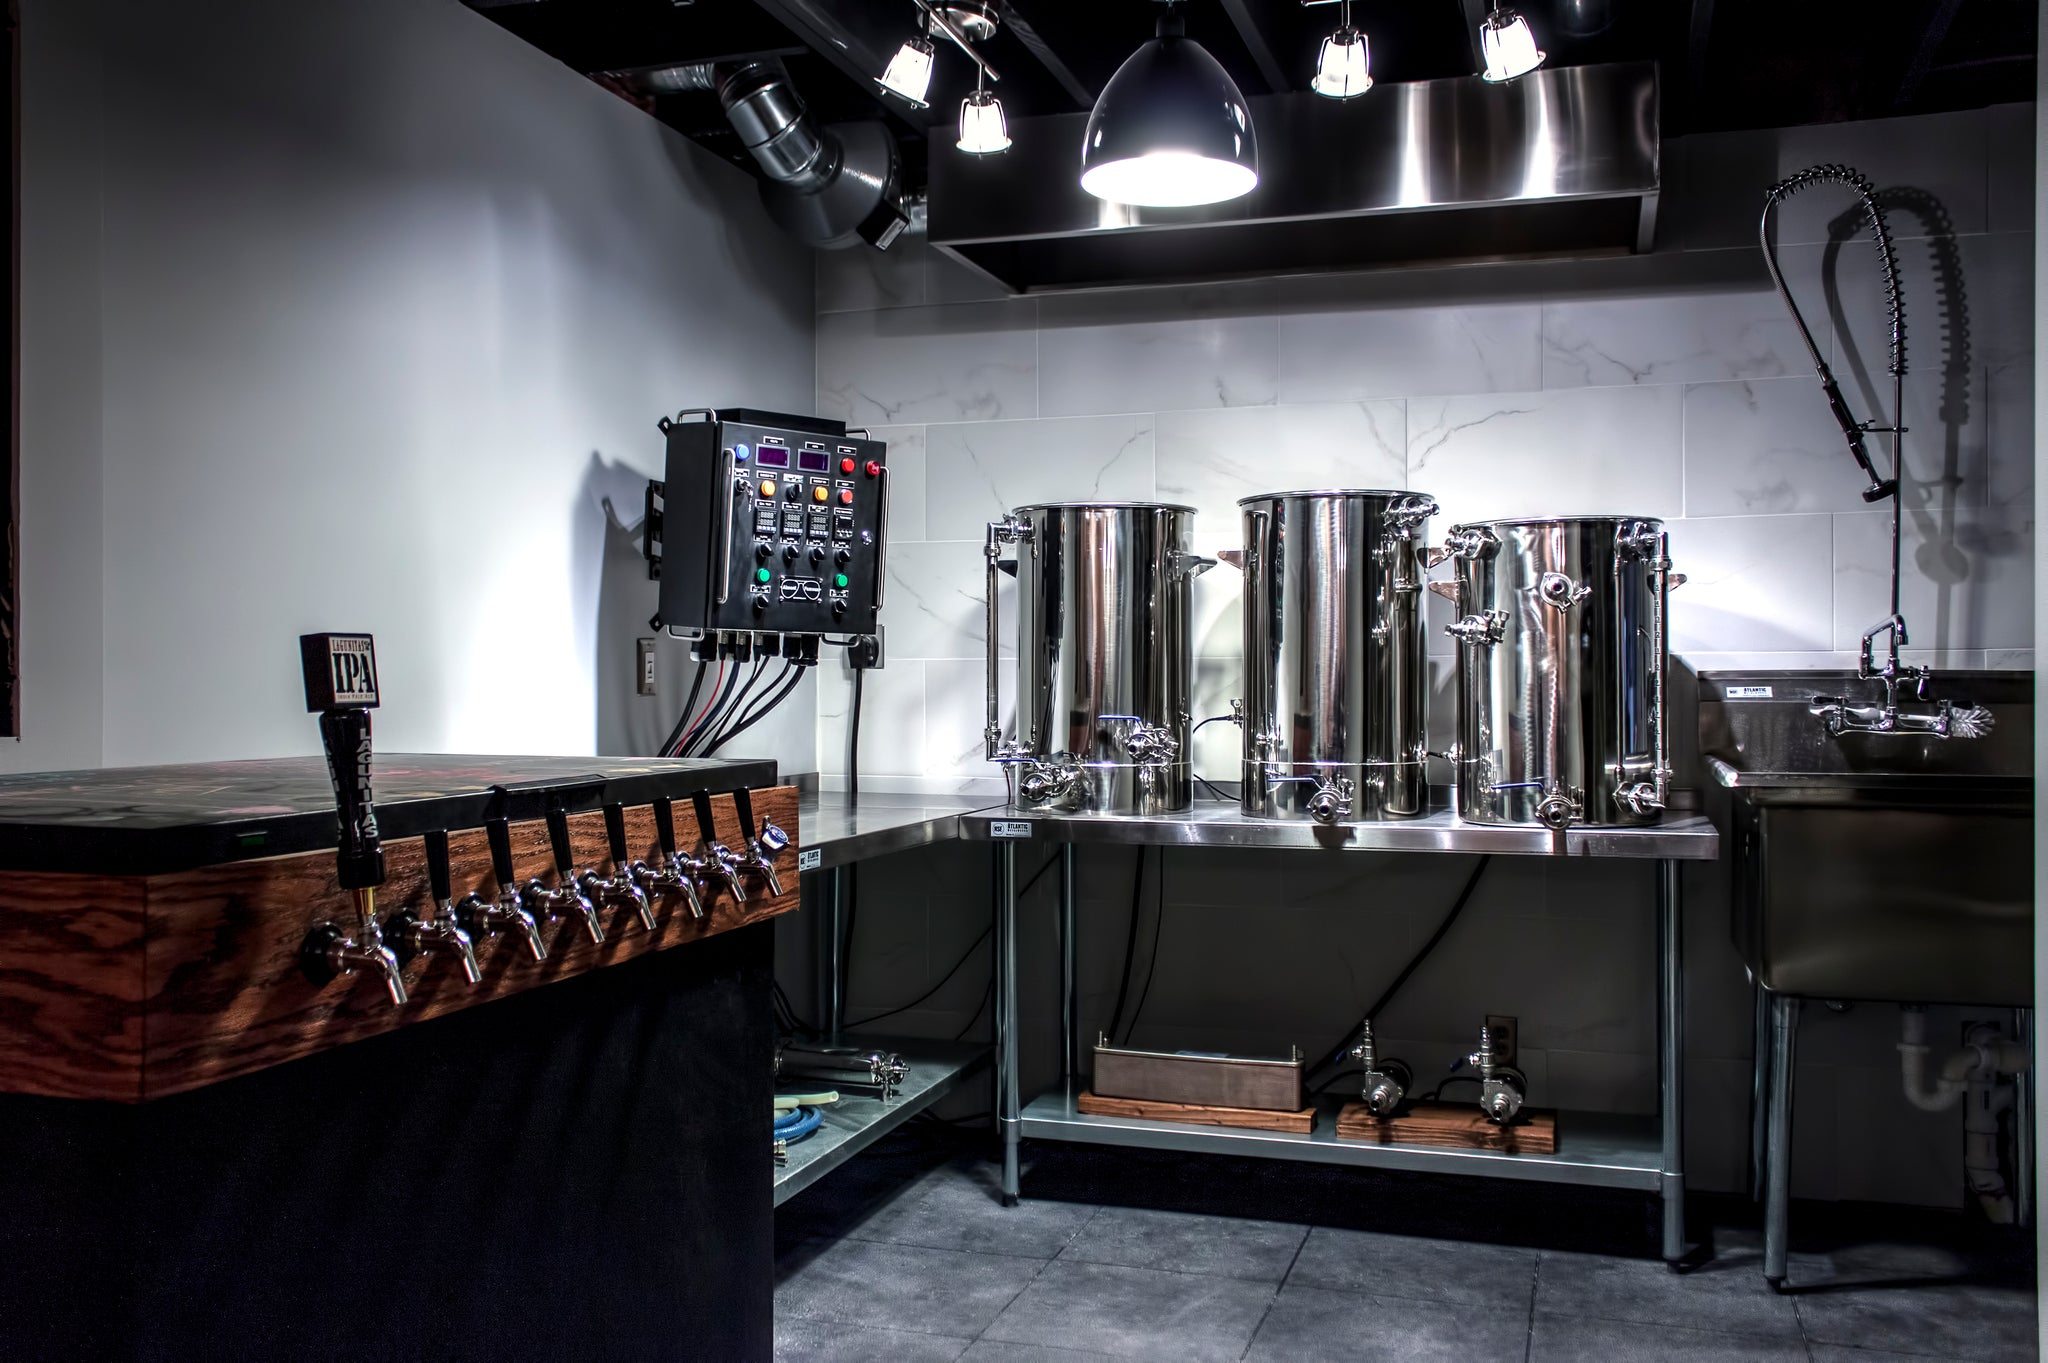 The Complete Guide To Building Your Brewery The Electric Brewery